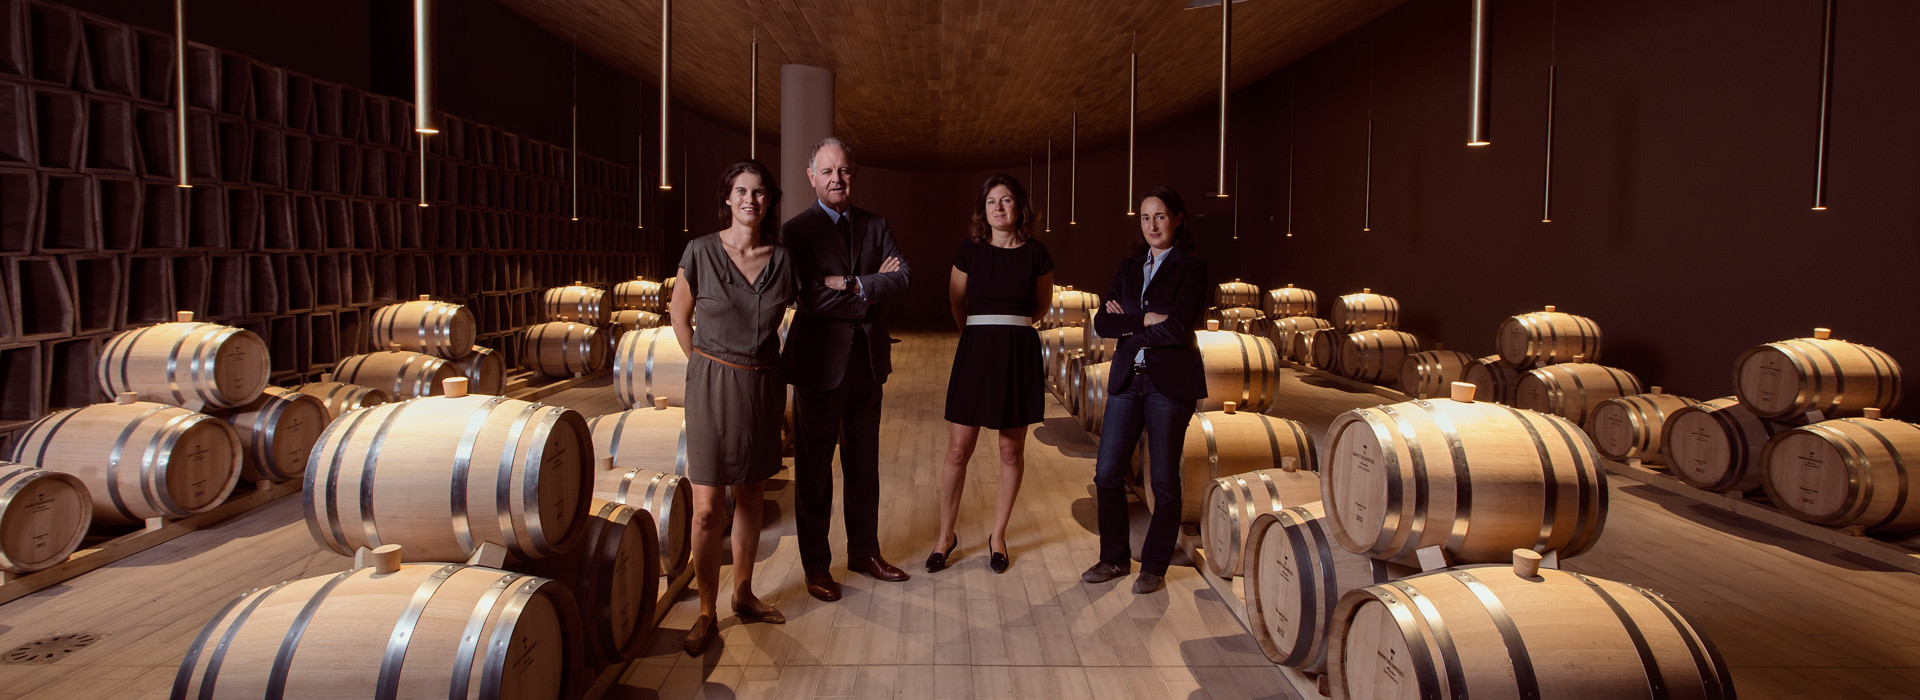 Antinori Family in wine cellar